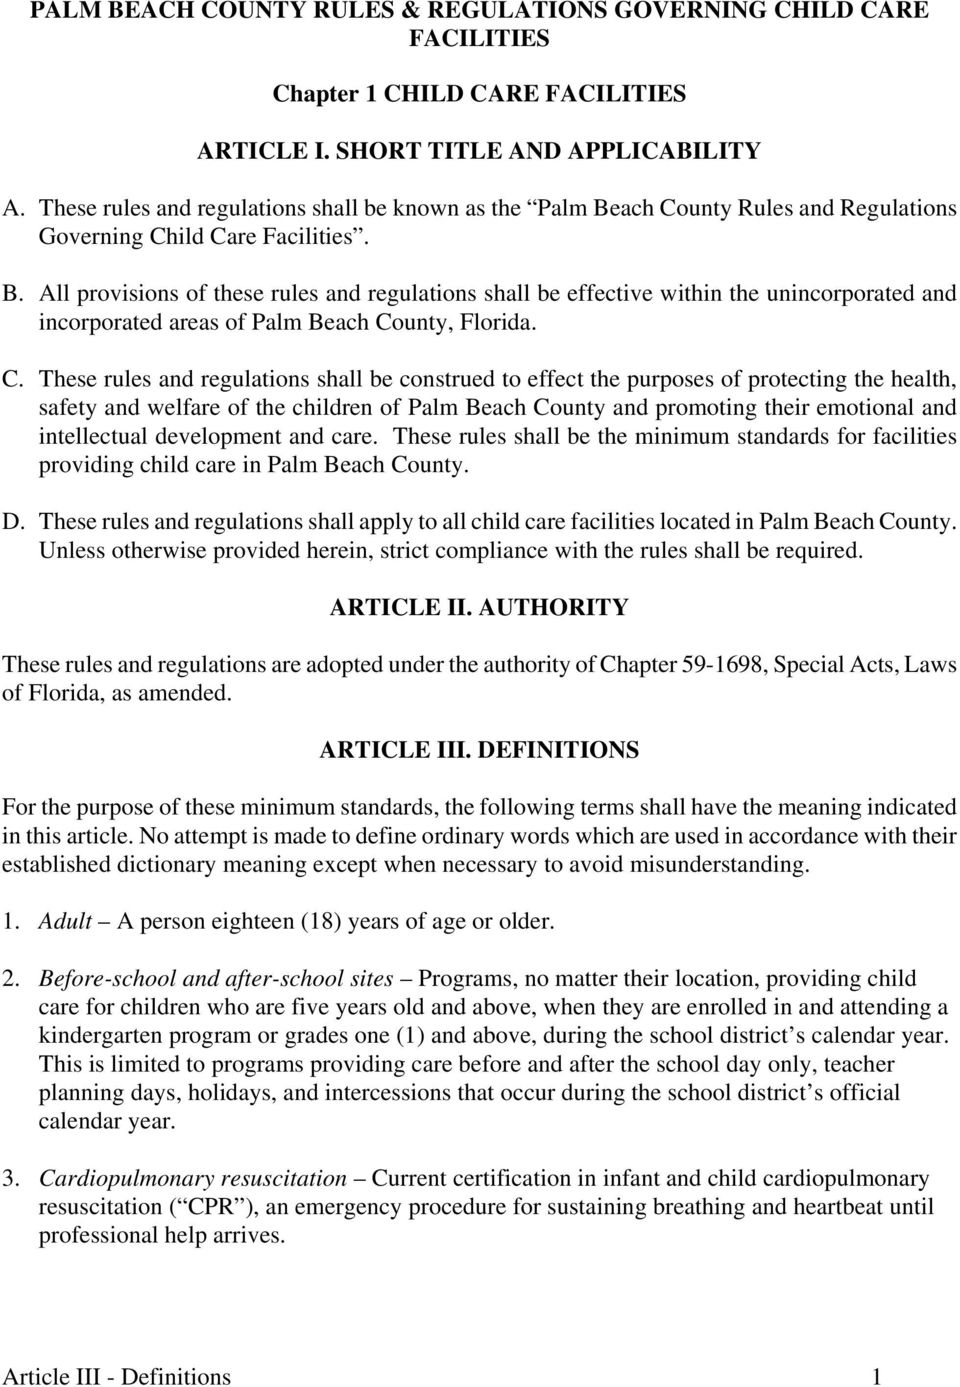 PALM BEACH COUNTY GOVERNING CHILD CARE FACILITIES - PDF